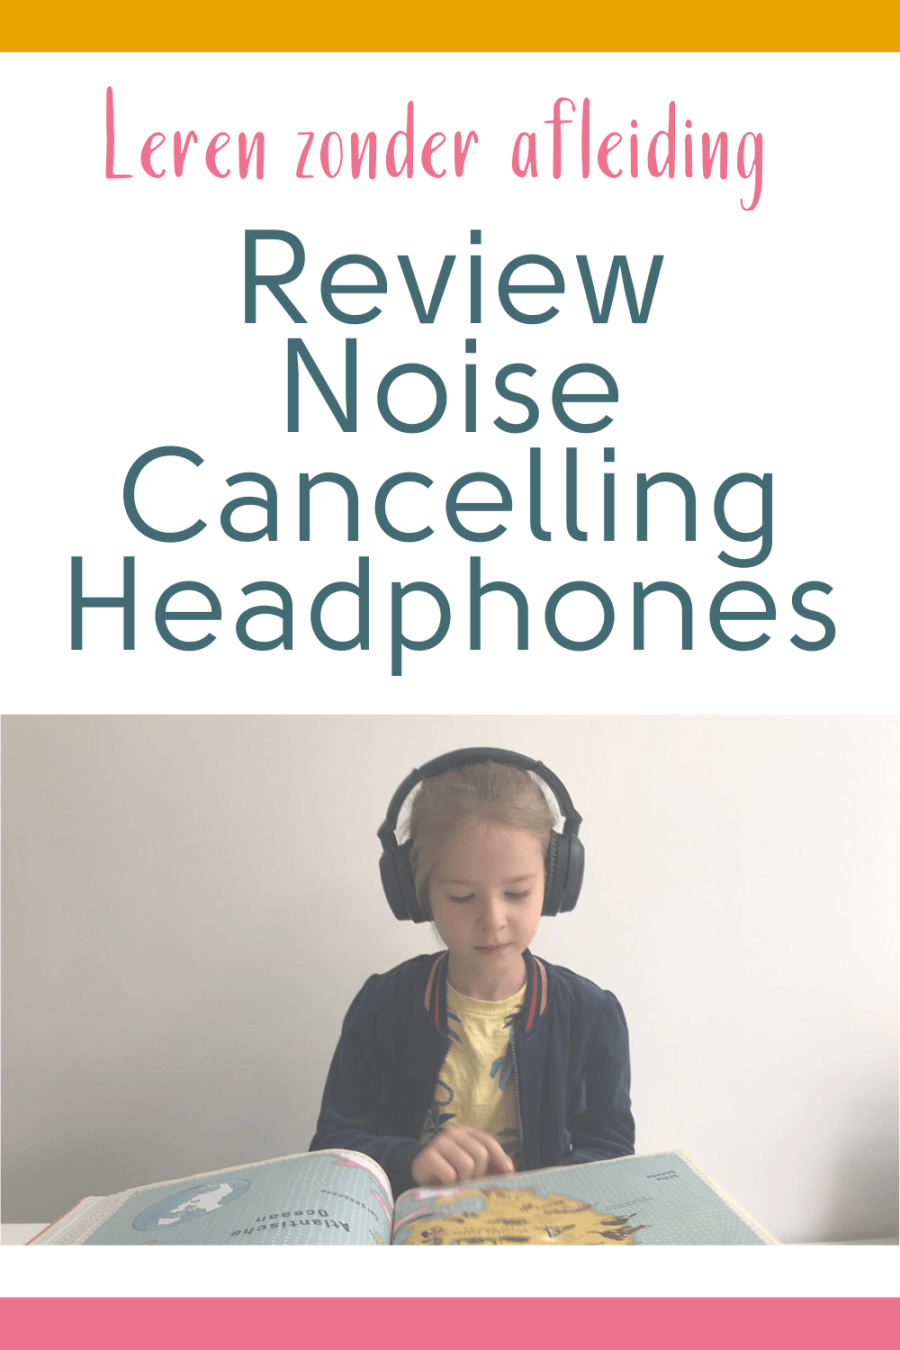 review noise cancelling headphones